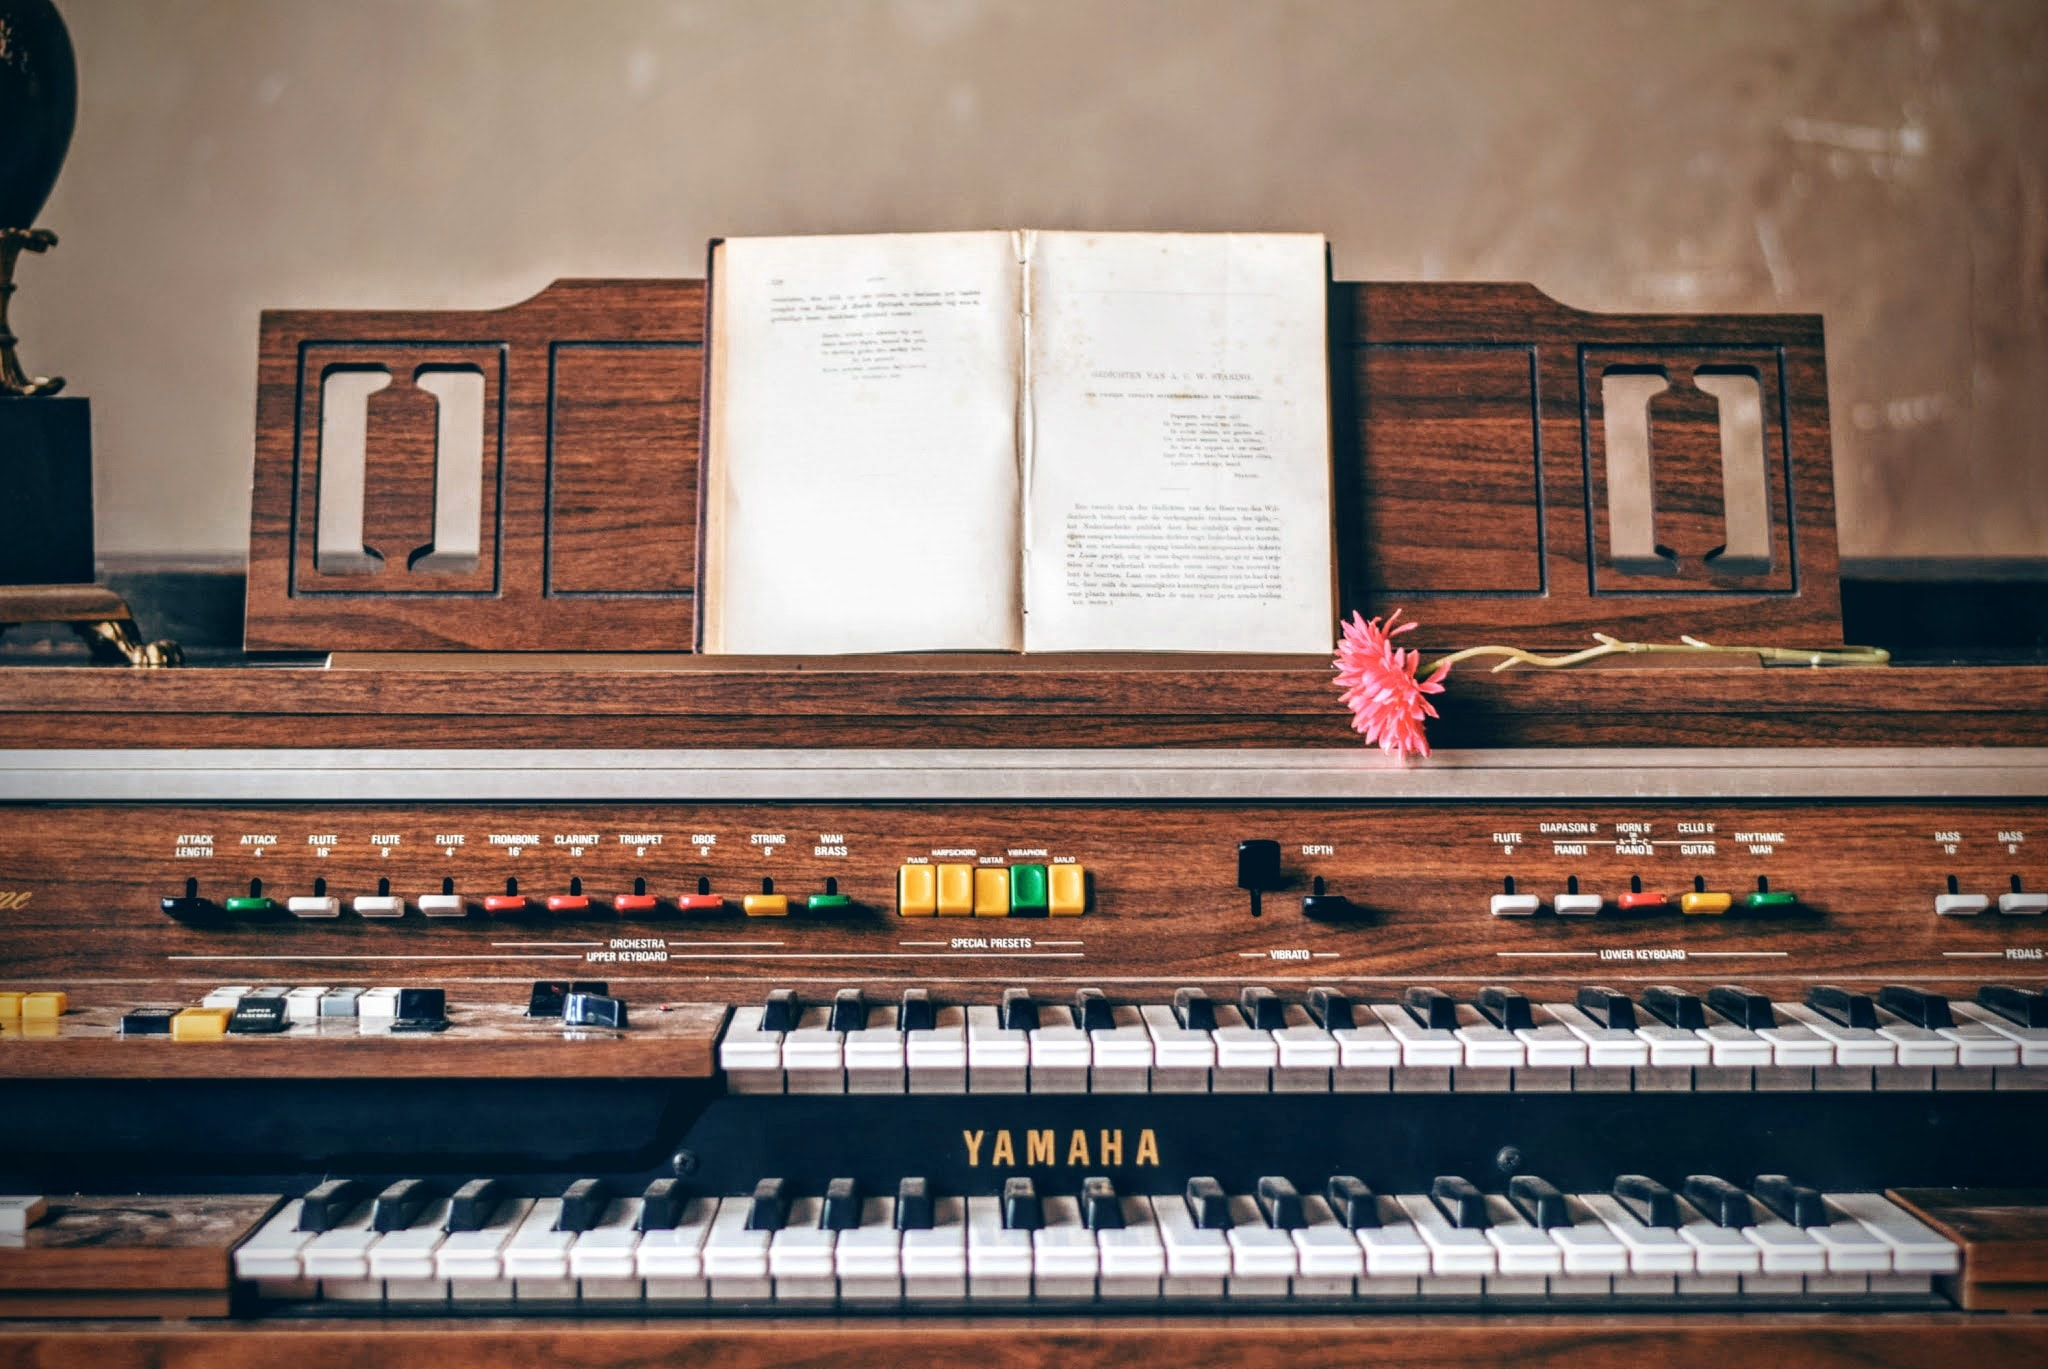 An open book and a pink flower on top of a Yamaha organ